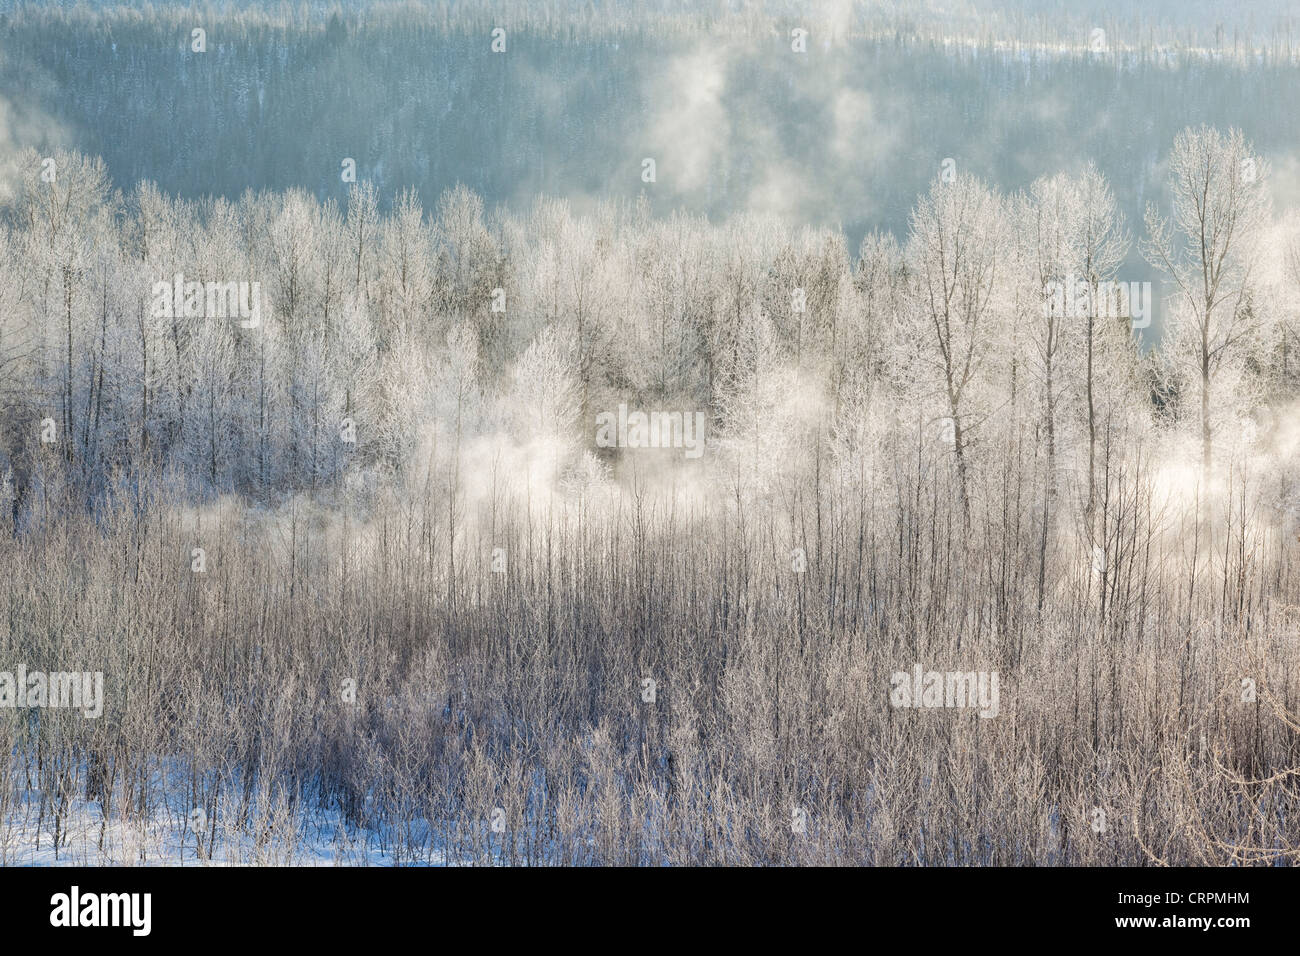 A winter fog and frosty trees, Fernie, British Columbia, Canada. - Stock Image